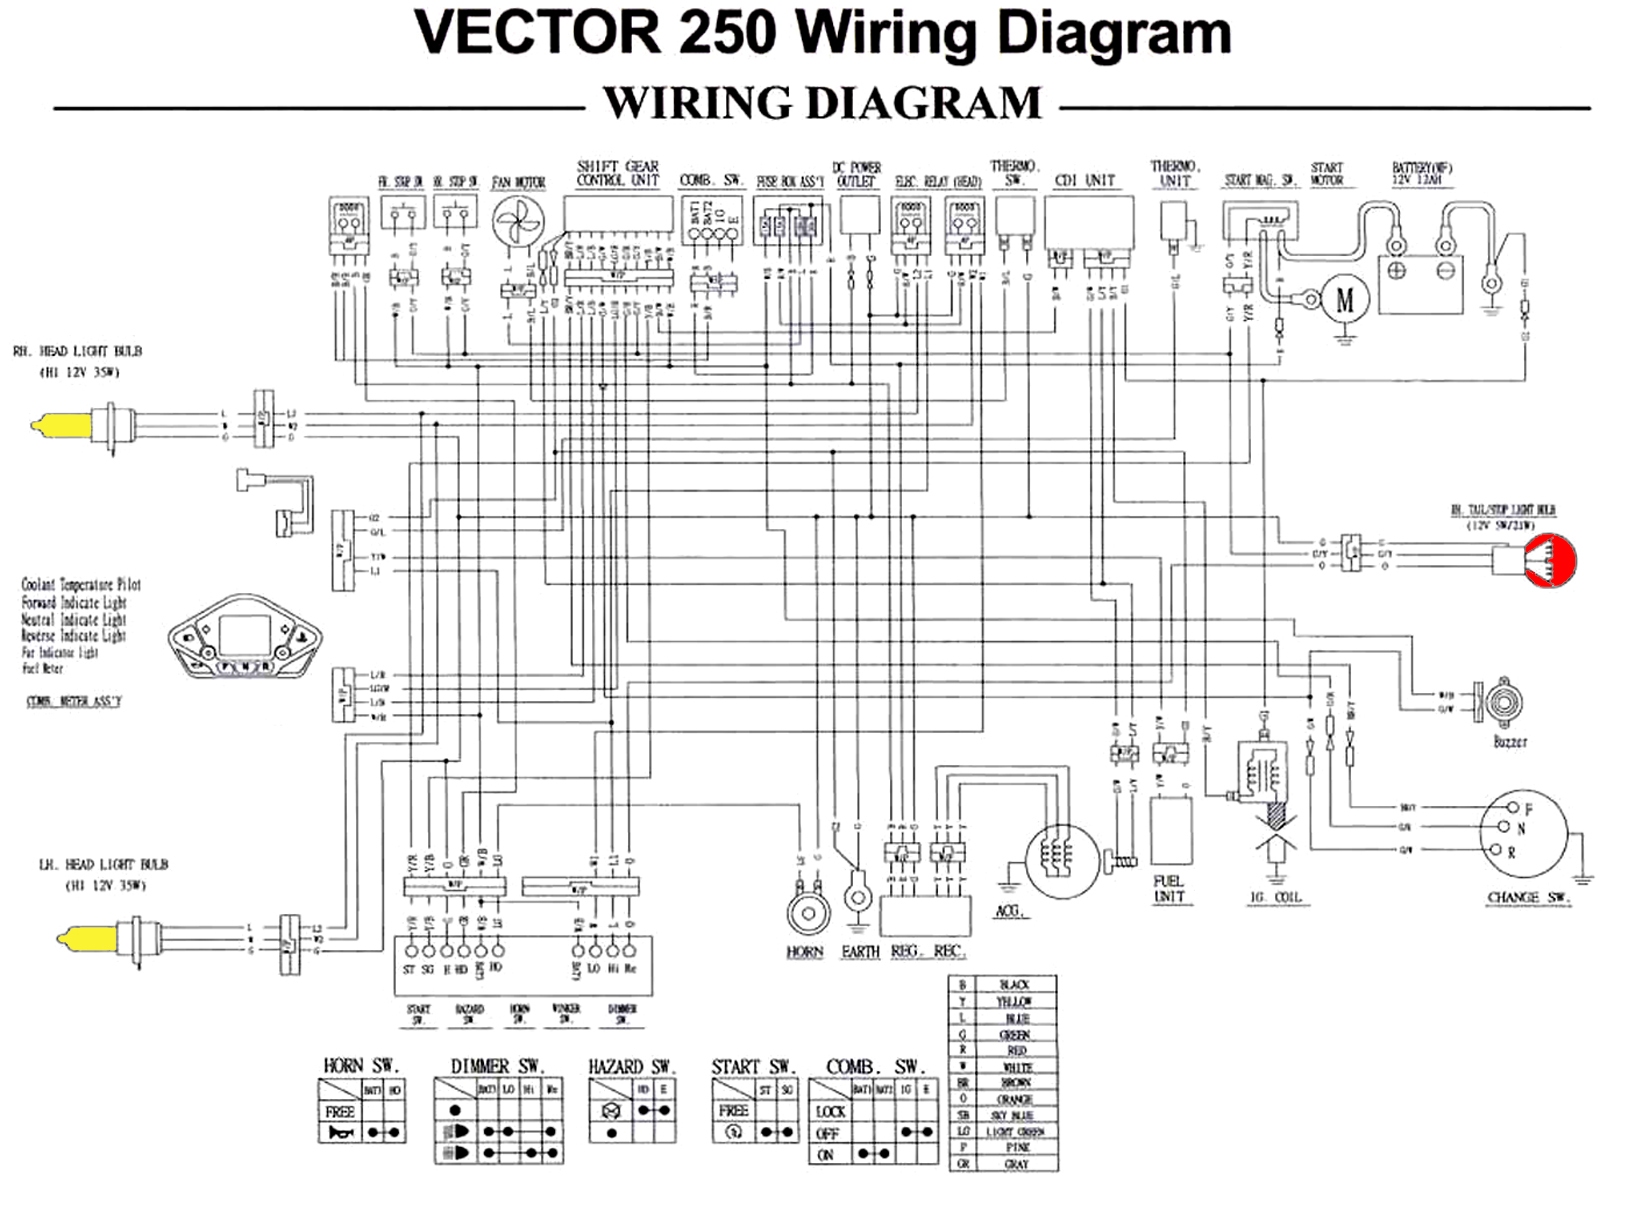 hight resolution of vector wiring diagram wiring diagram sheet carrier vector 1800 wiring diagram vector wiring diagram